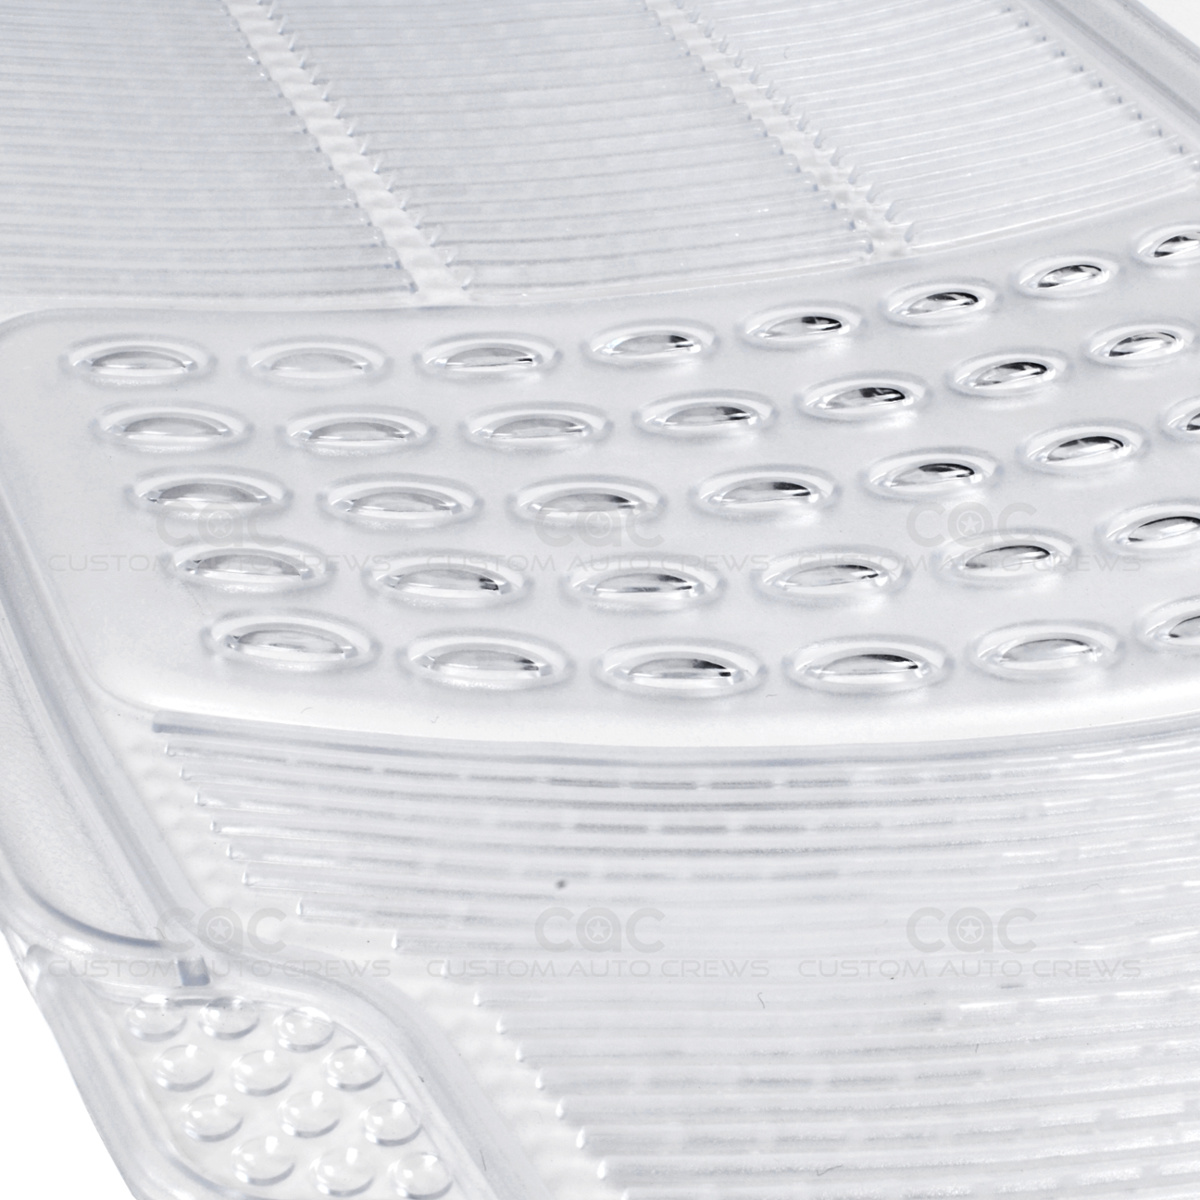 Clear Rubber Car Floor Mats Front 2 Piece Set All Weather